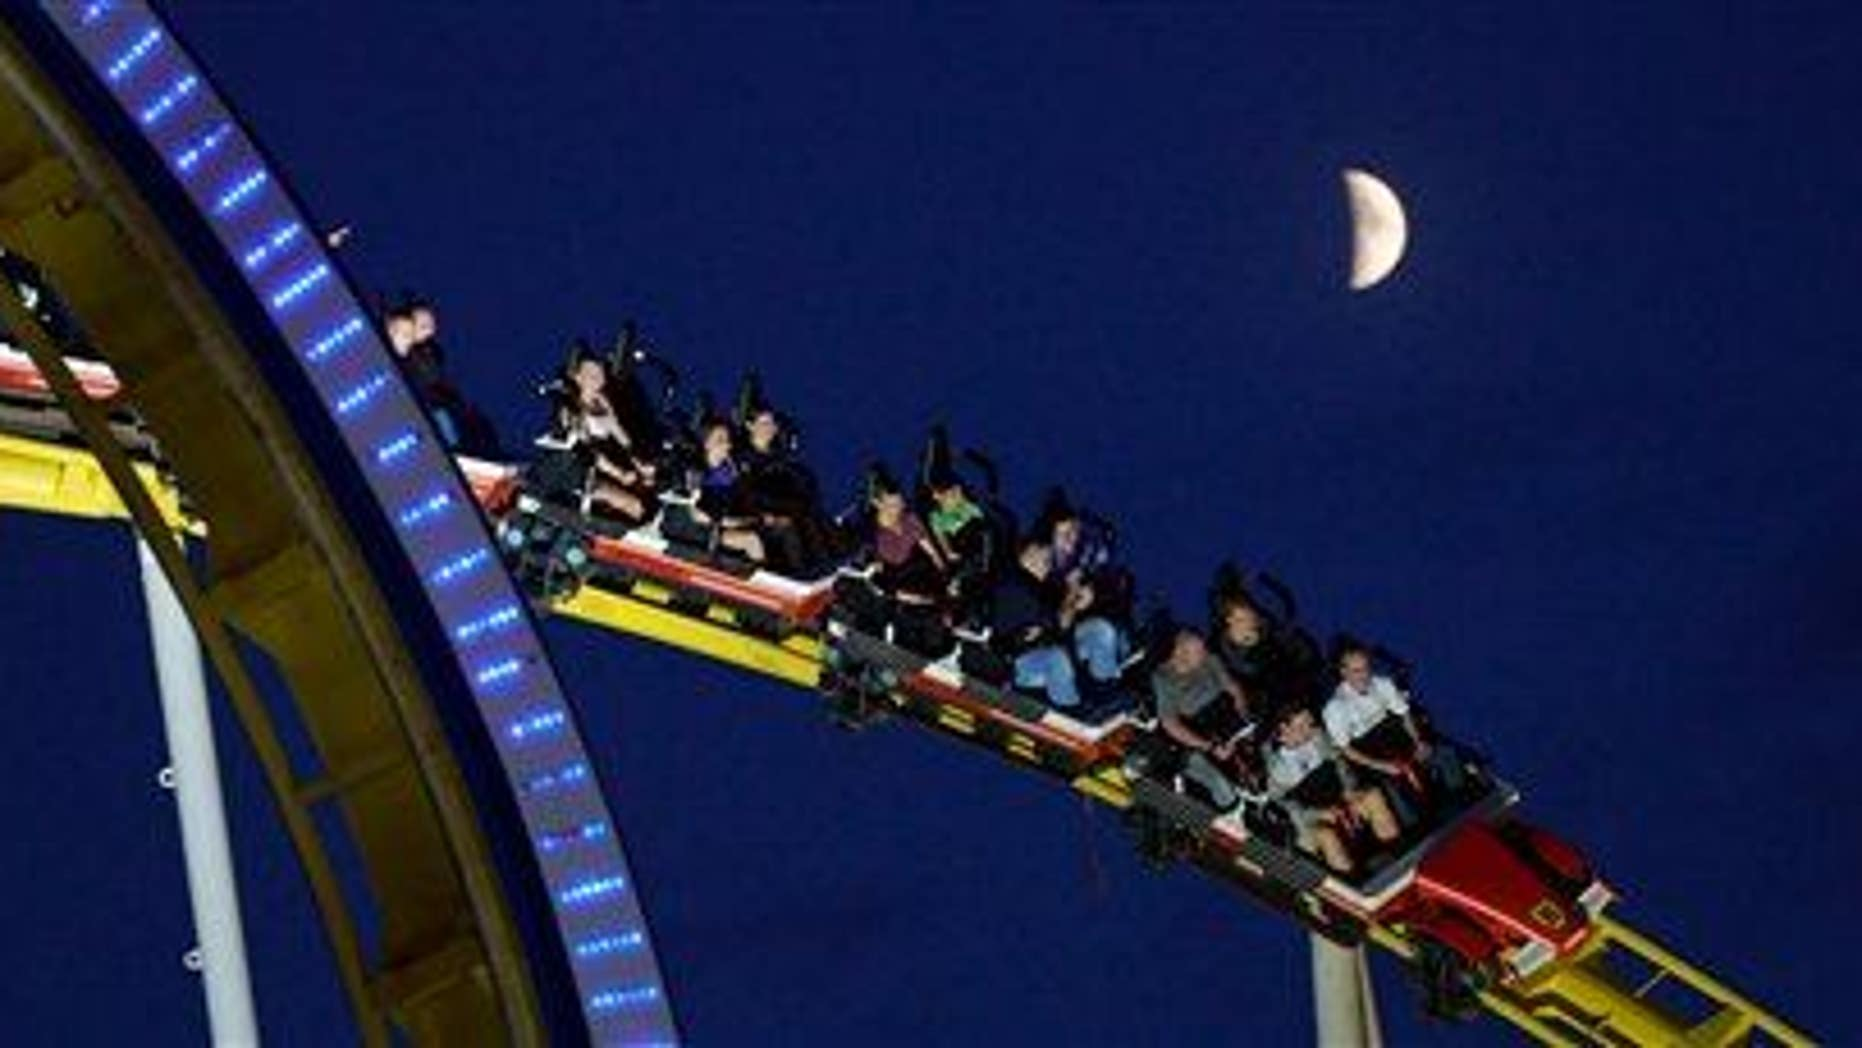 People enjoy a roller-coaster ride on July 4, 2014, in Hannover, Germany.